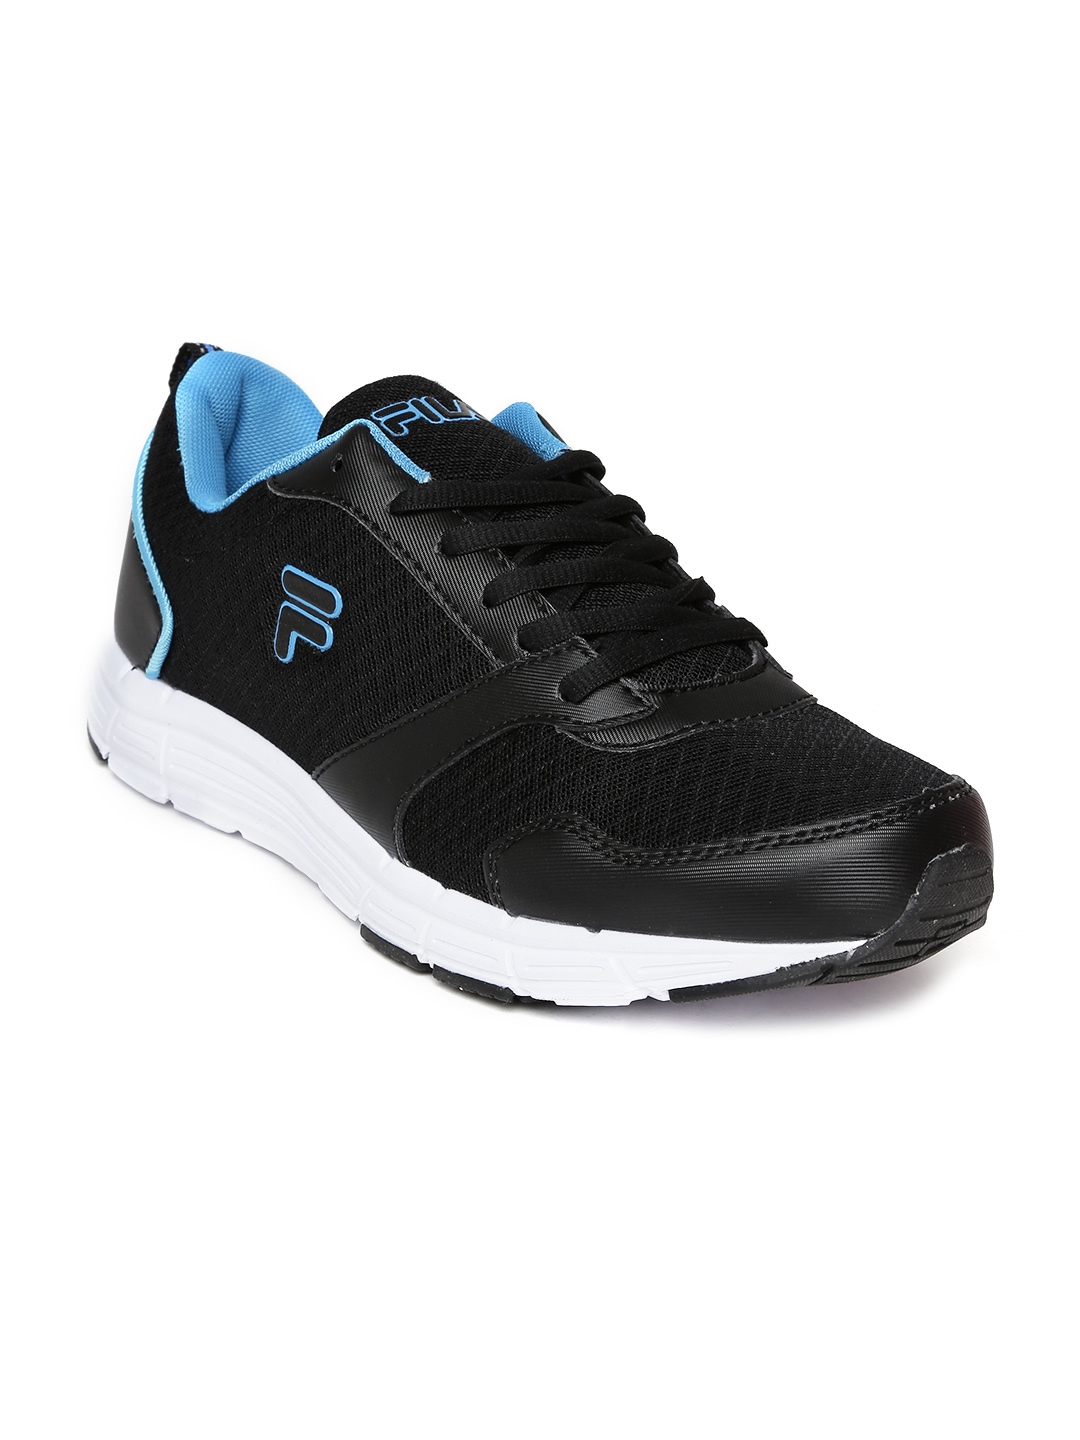 home footwear footwear sports shoes fila sports shoes